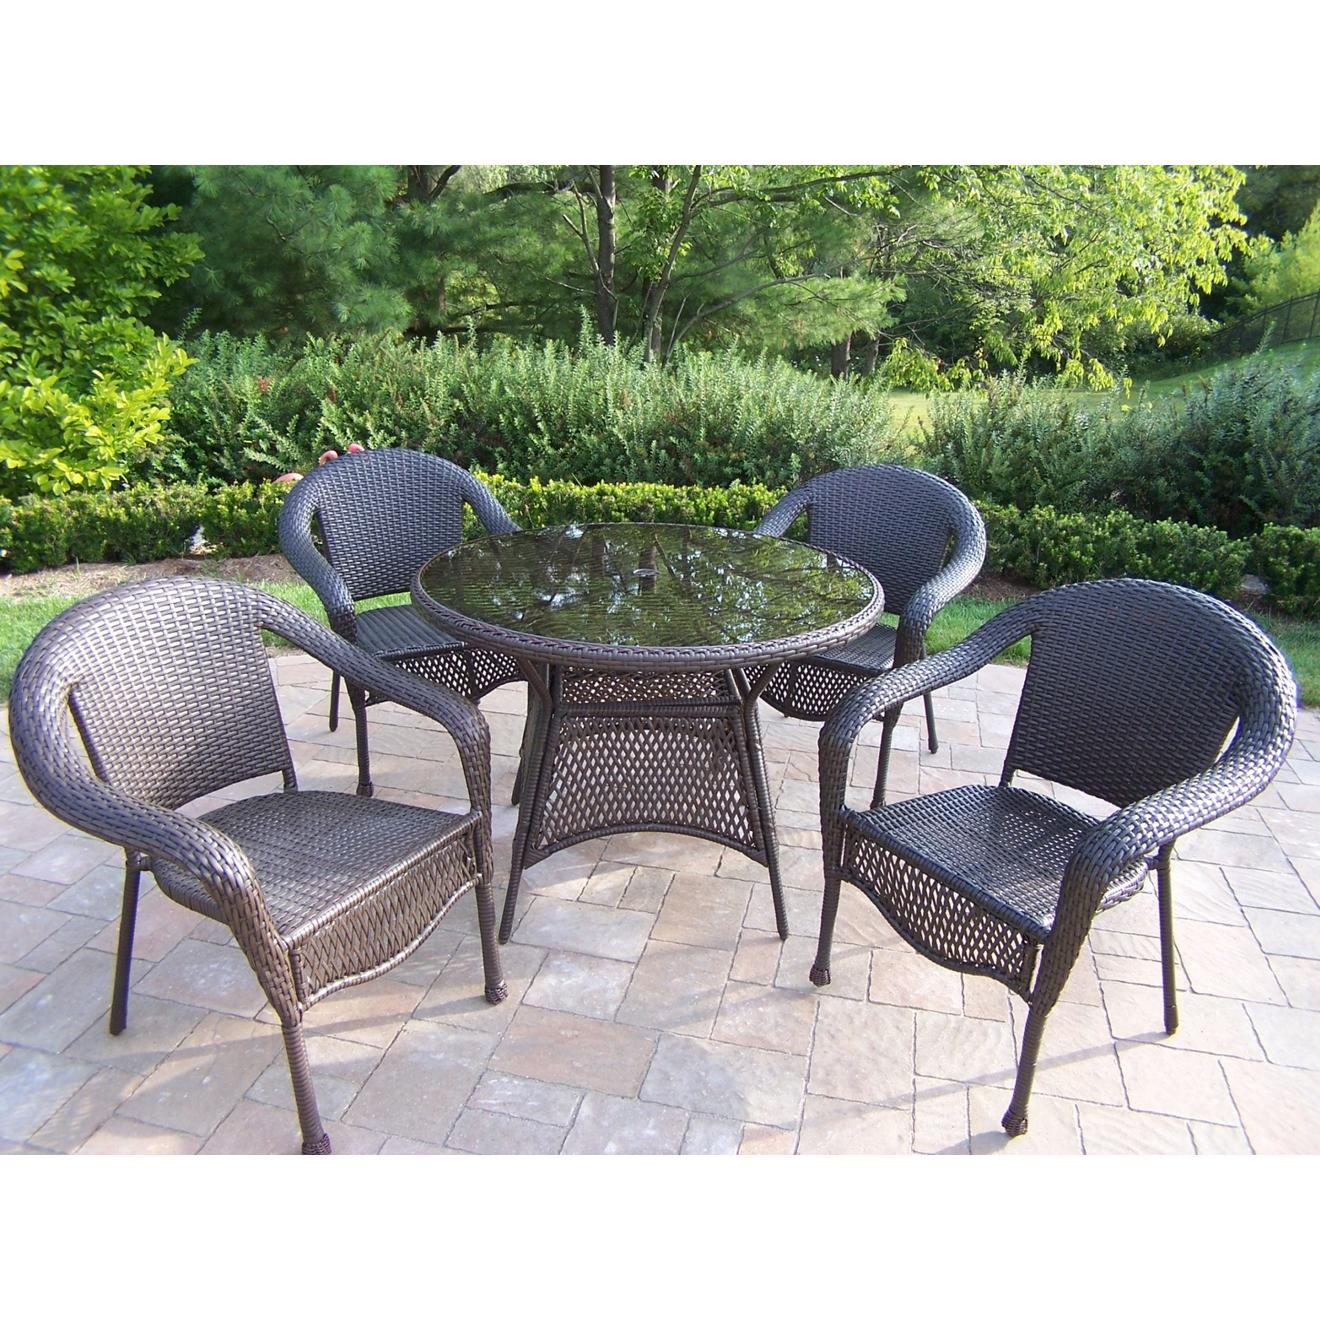 Oakland Living Resin Wicker 5 Piece Dining Set - Coffee